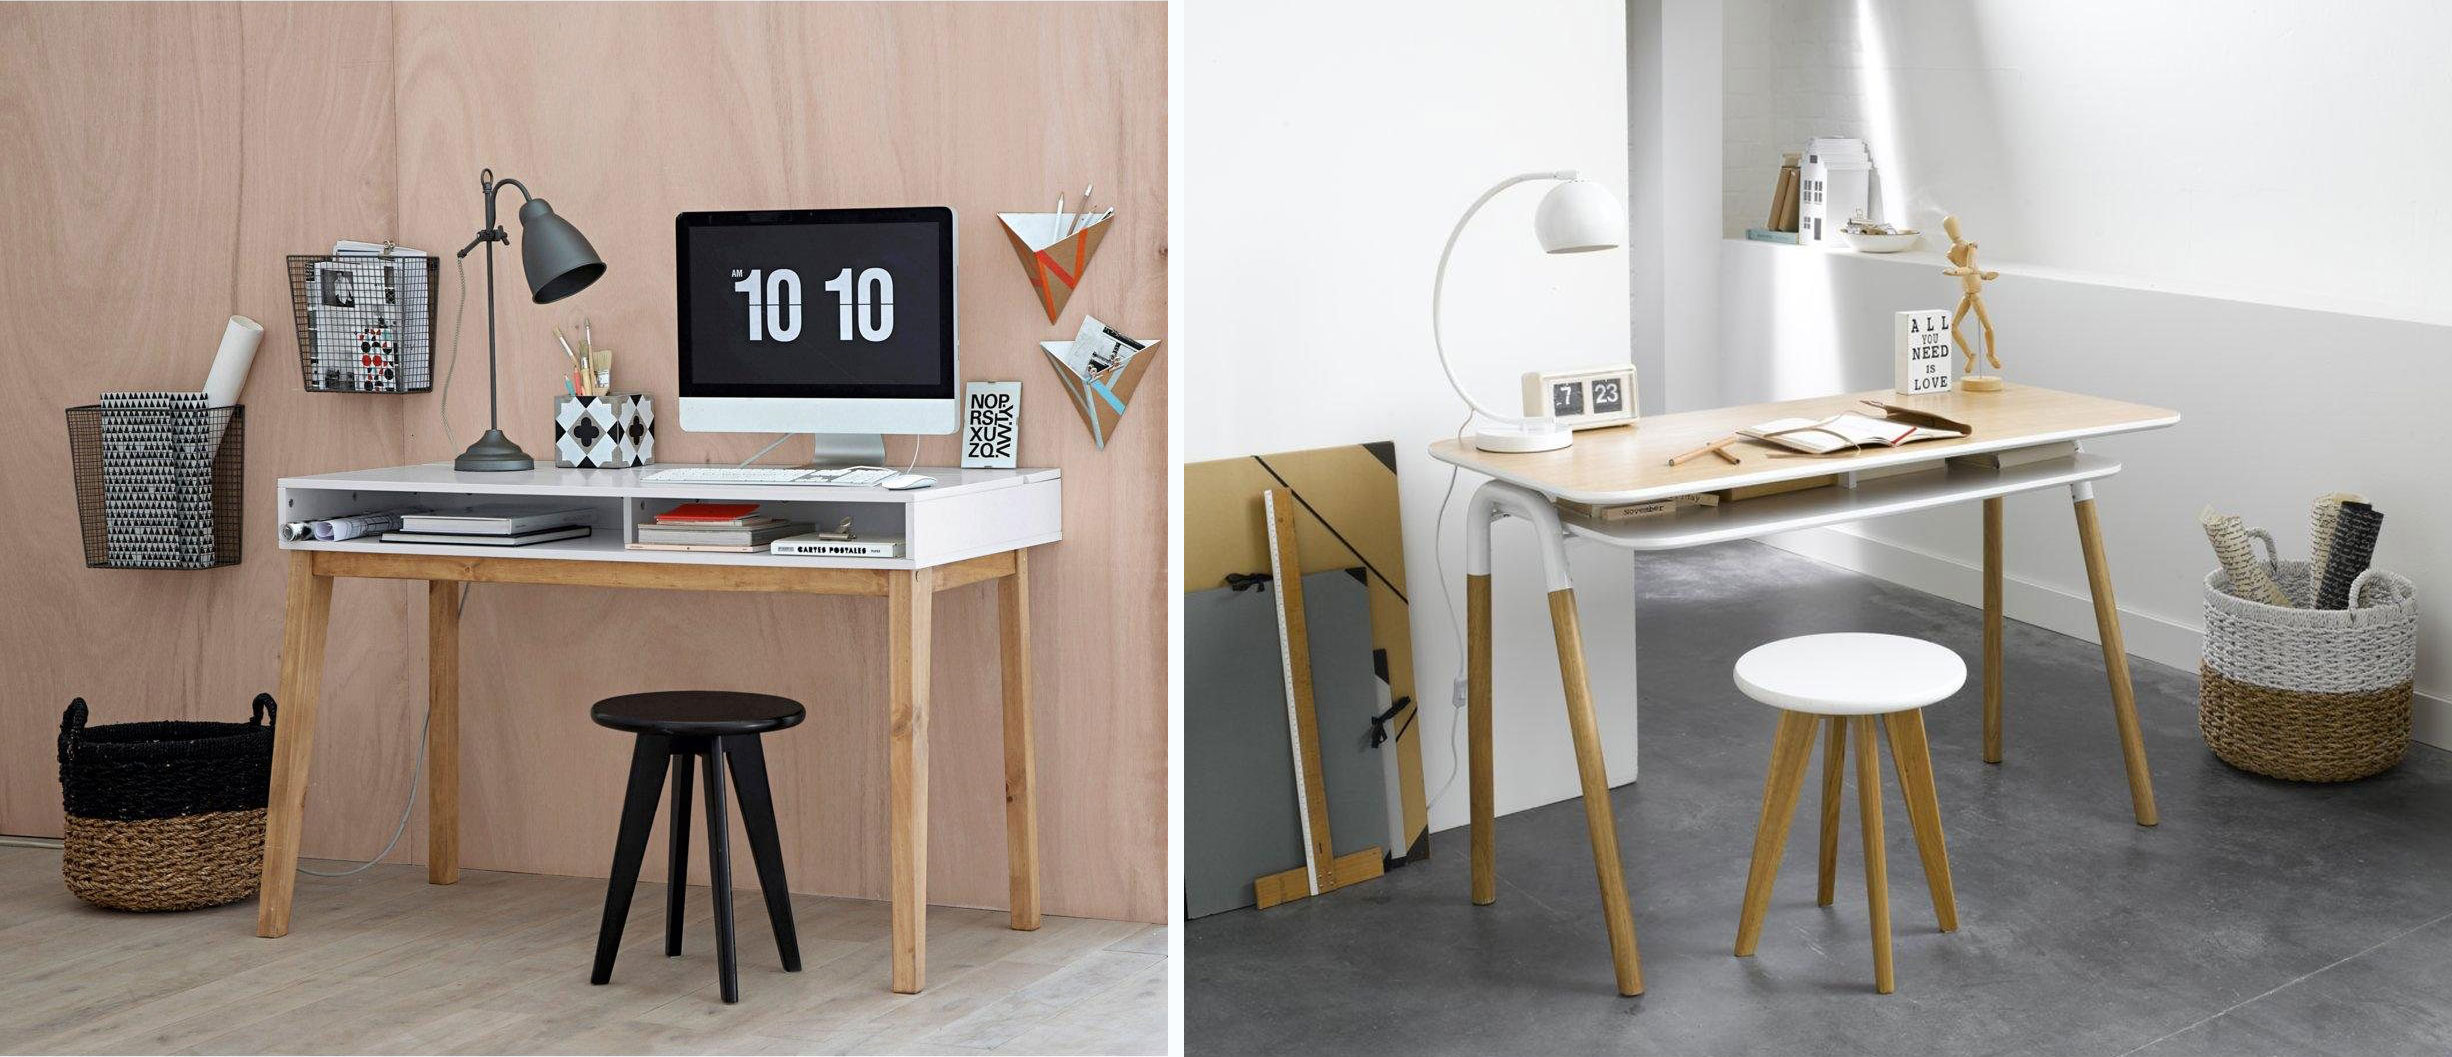 bureau design deco bois blanc style scandinave la redoute. Black Bedroom Furniture Sets. Home Design Ideas